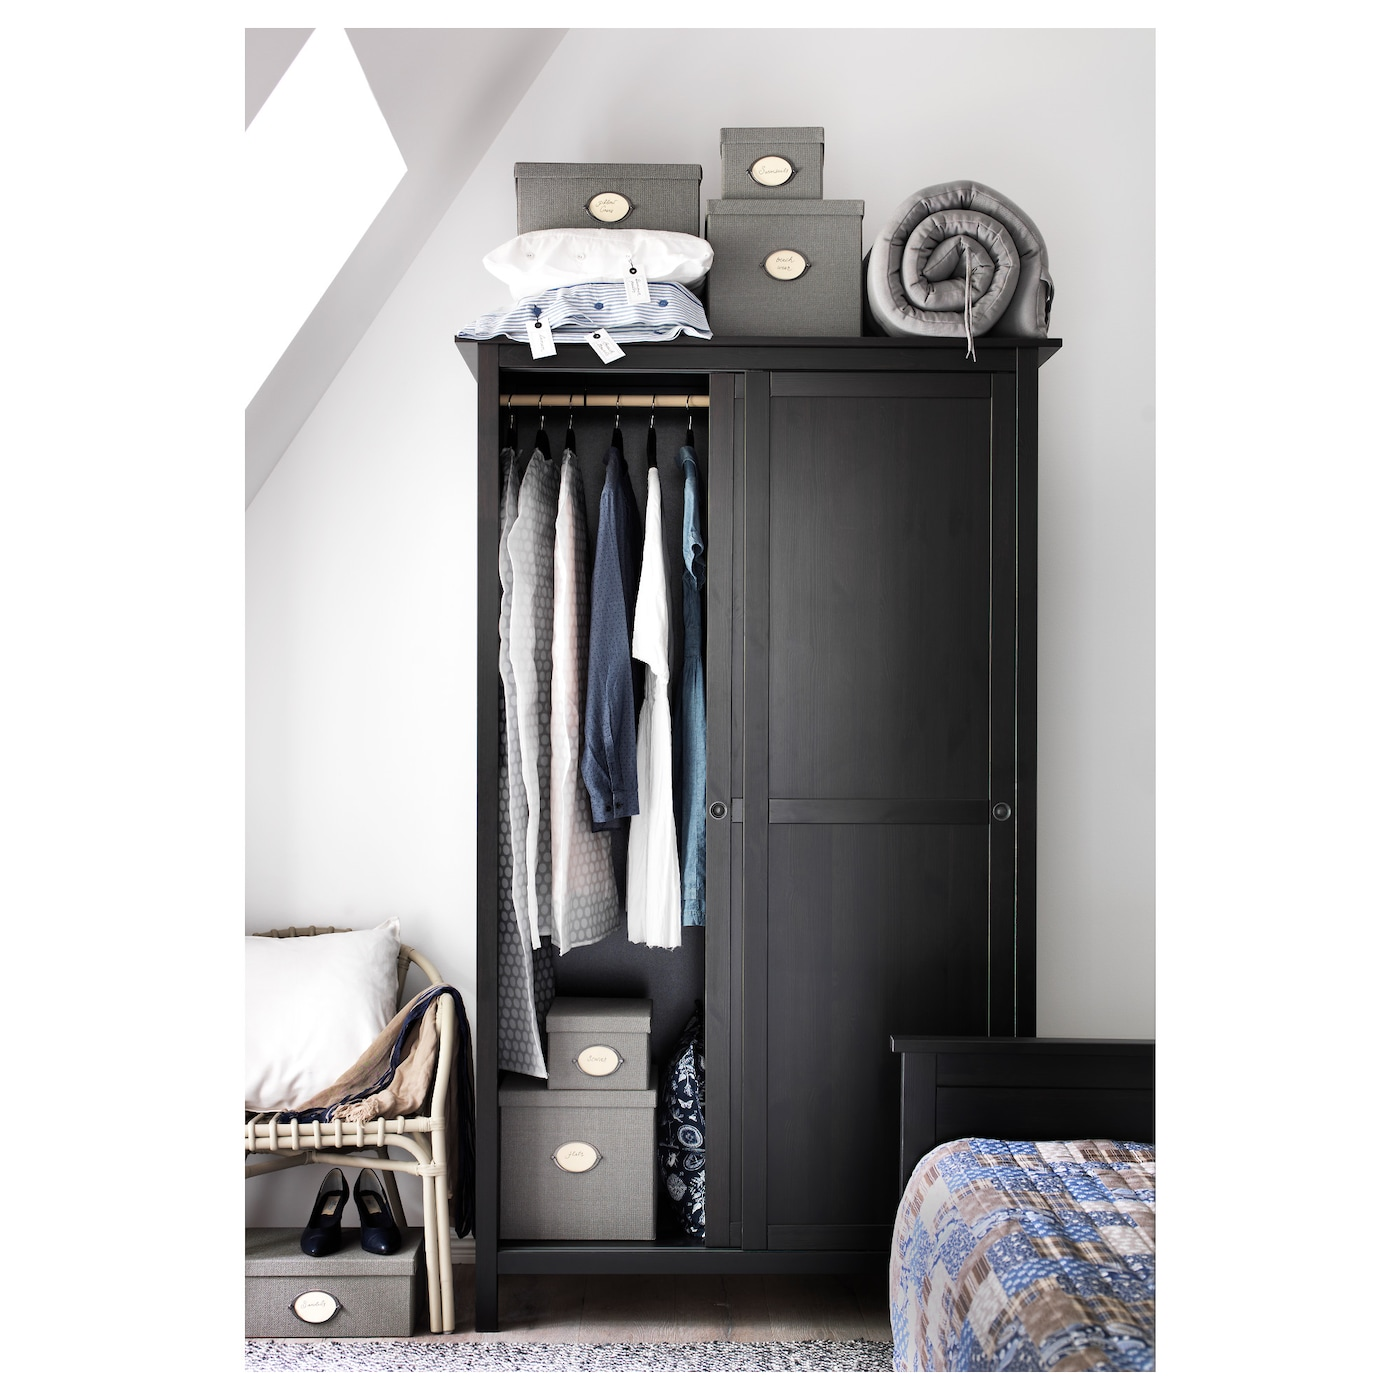 hemnes armoire 2 portes coulissantes brun noir 120 x 197 cm ikea. Black Bedroom Furniture Sets. Home Design Ideas